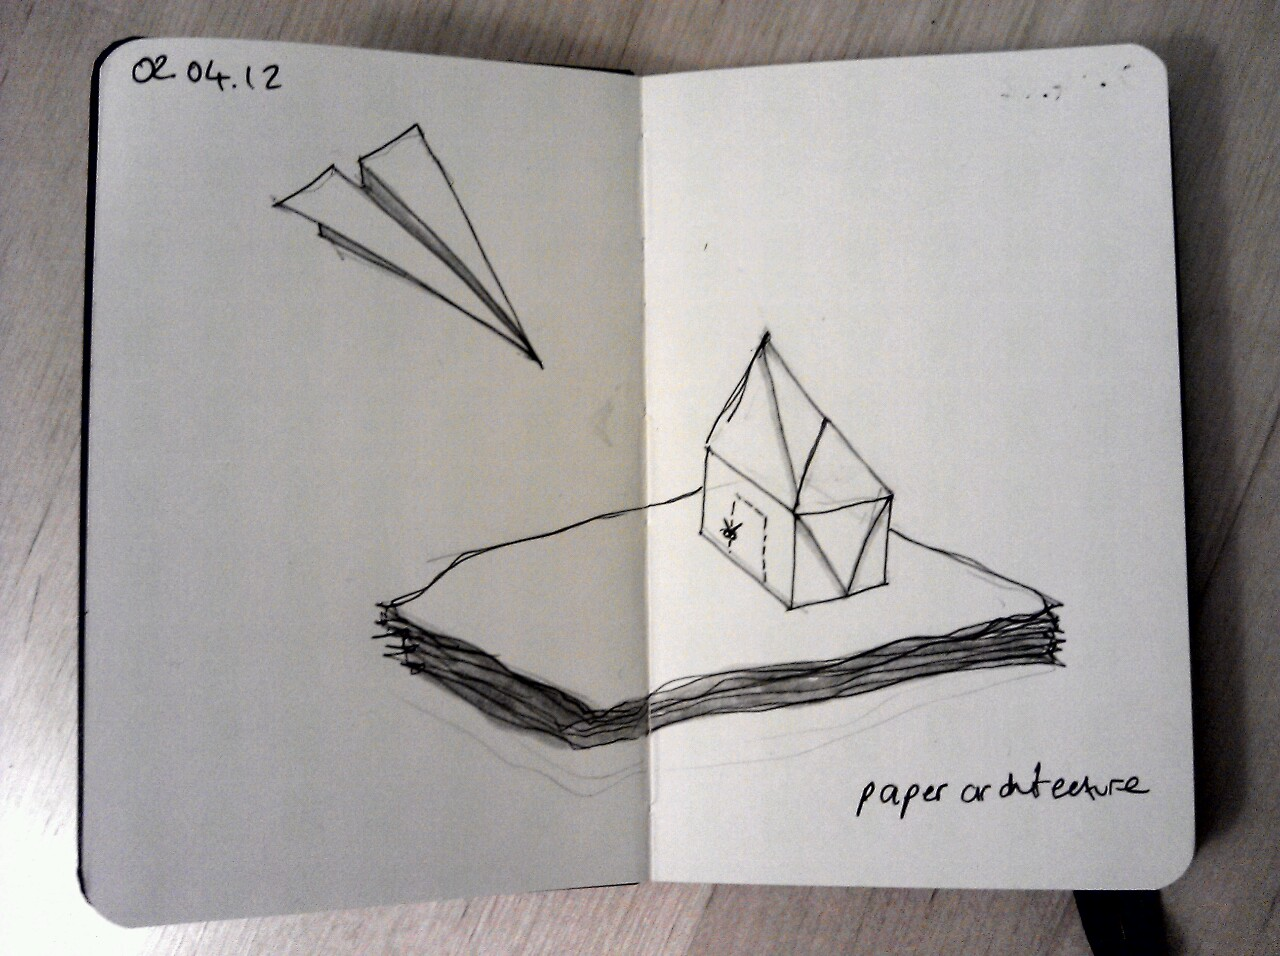 365 drawings later … day 62 … paper architecture (of sorts)